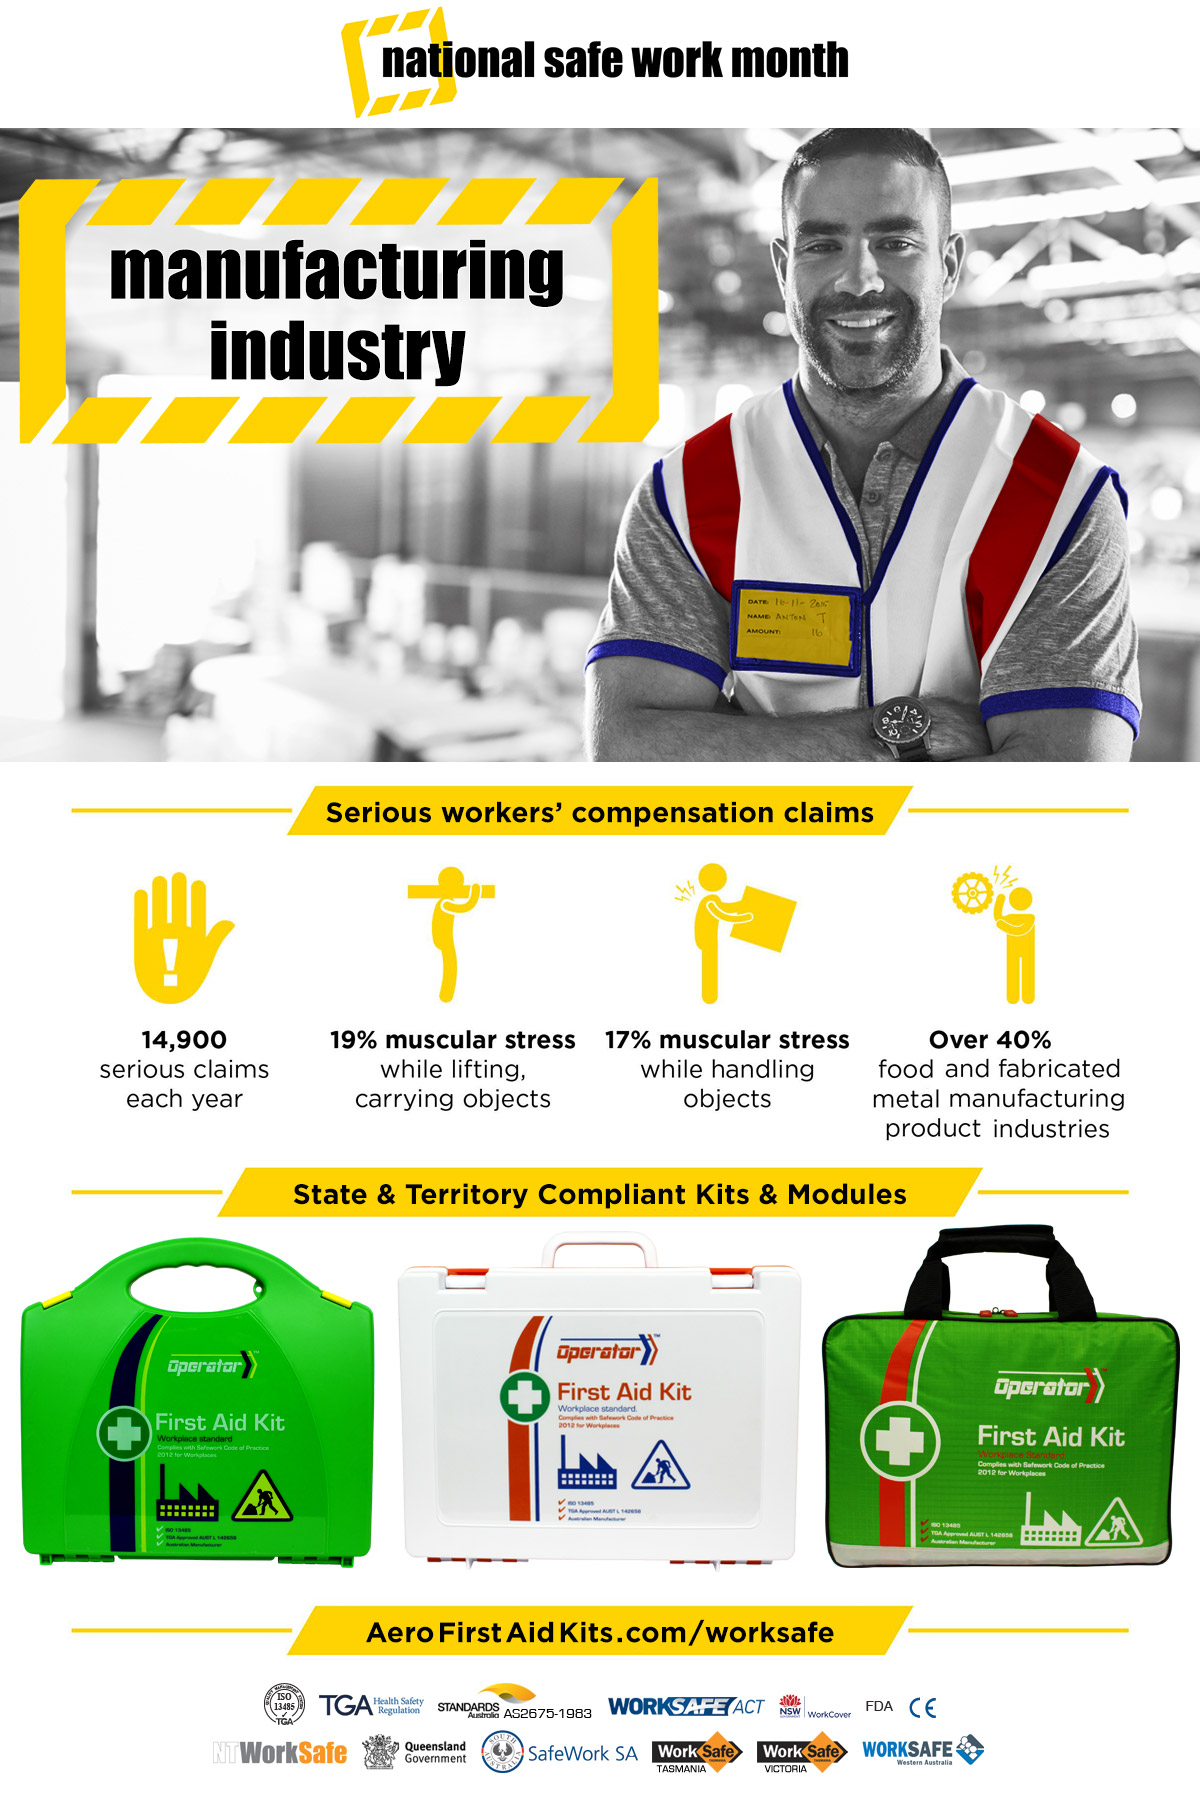 Manufacturing Industry First Aid Kits - National Safe Work Month